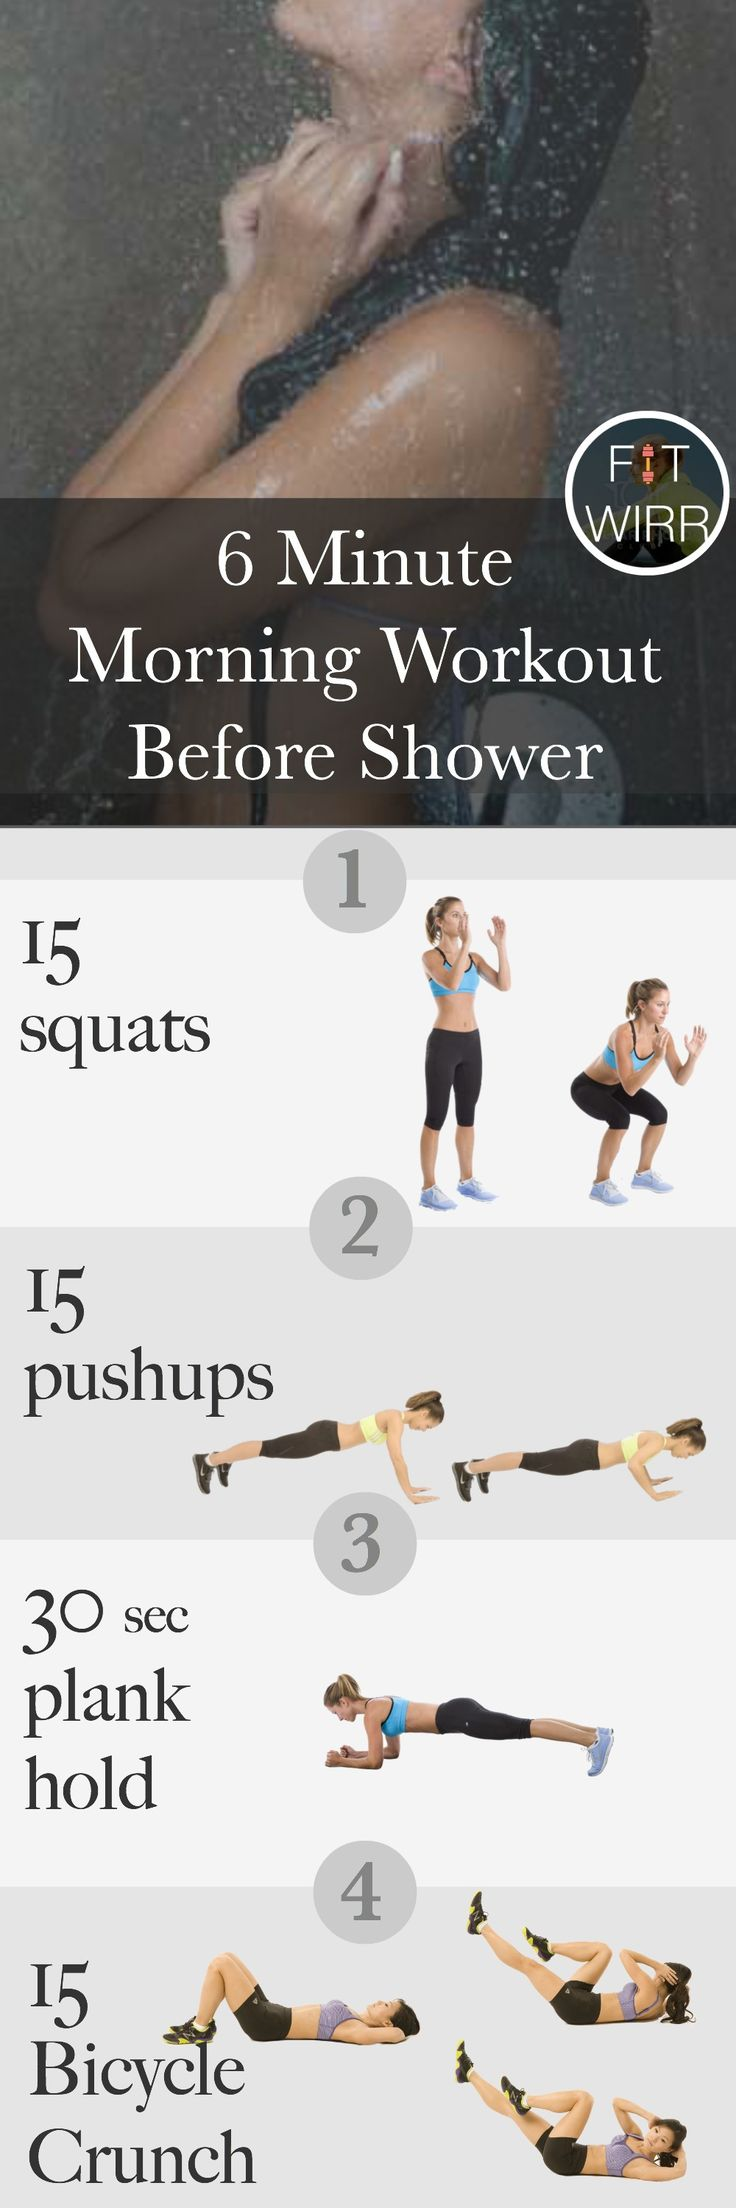 6 Minute Mini Morning Workout to Crush Calories and Melt Fat. Short yet intense workout that targets your whole body. #fitness #workout #exercise #loseweight